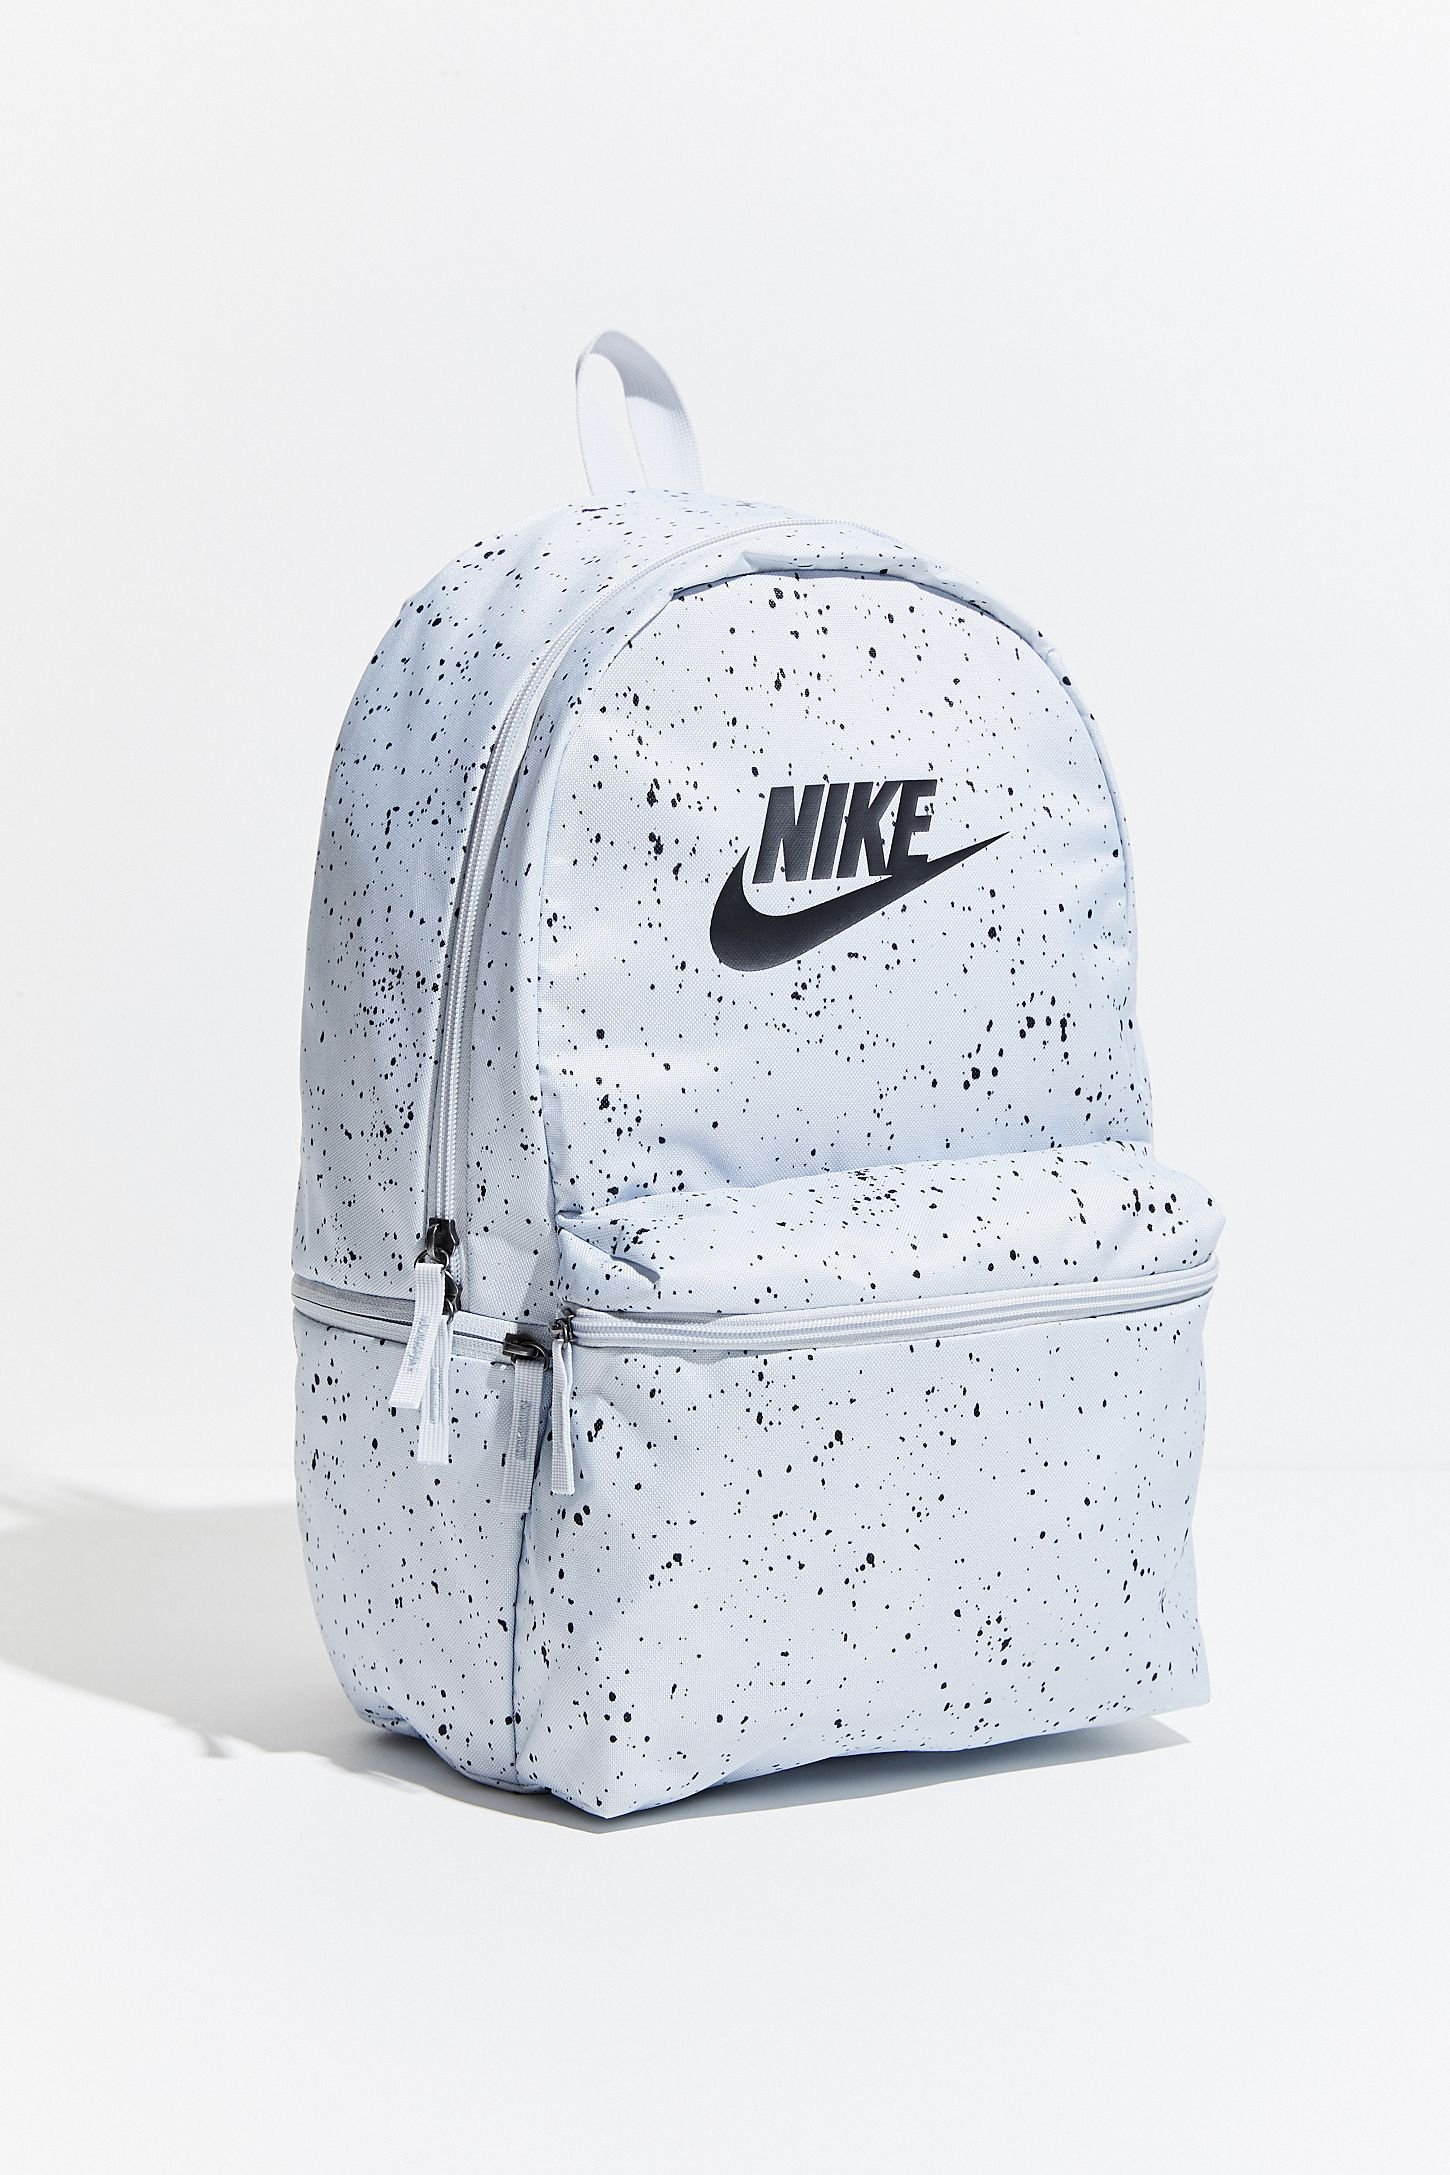 Places That Sell Nike Backpacks Near Me - CEAGESP 3a7f08597ee5